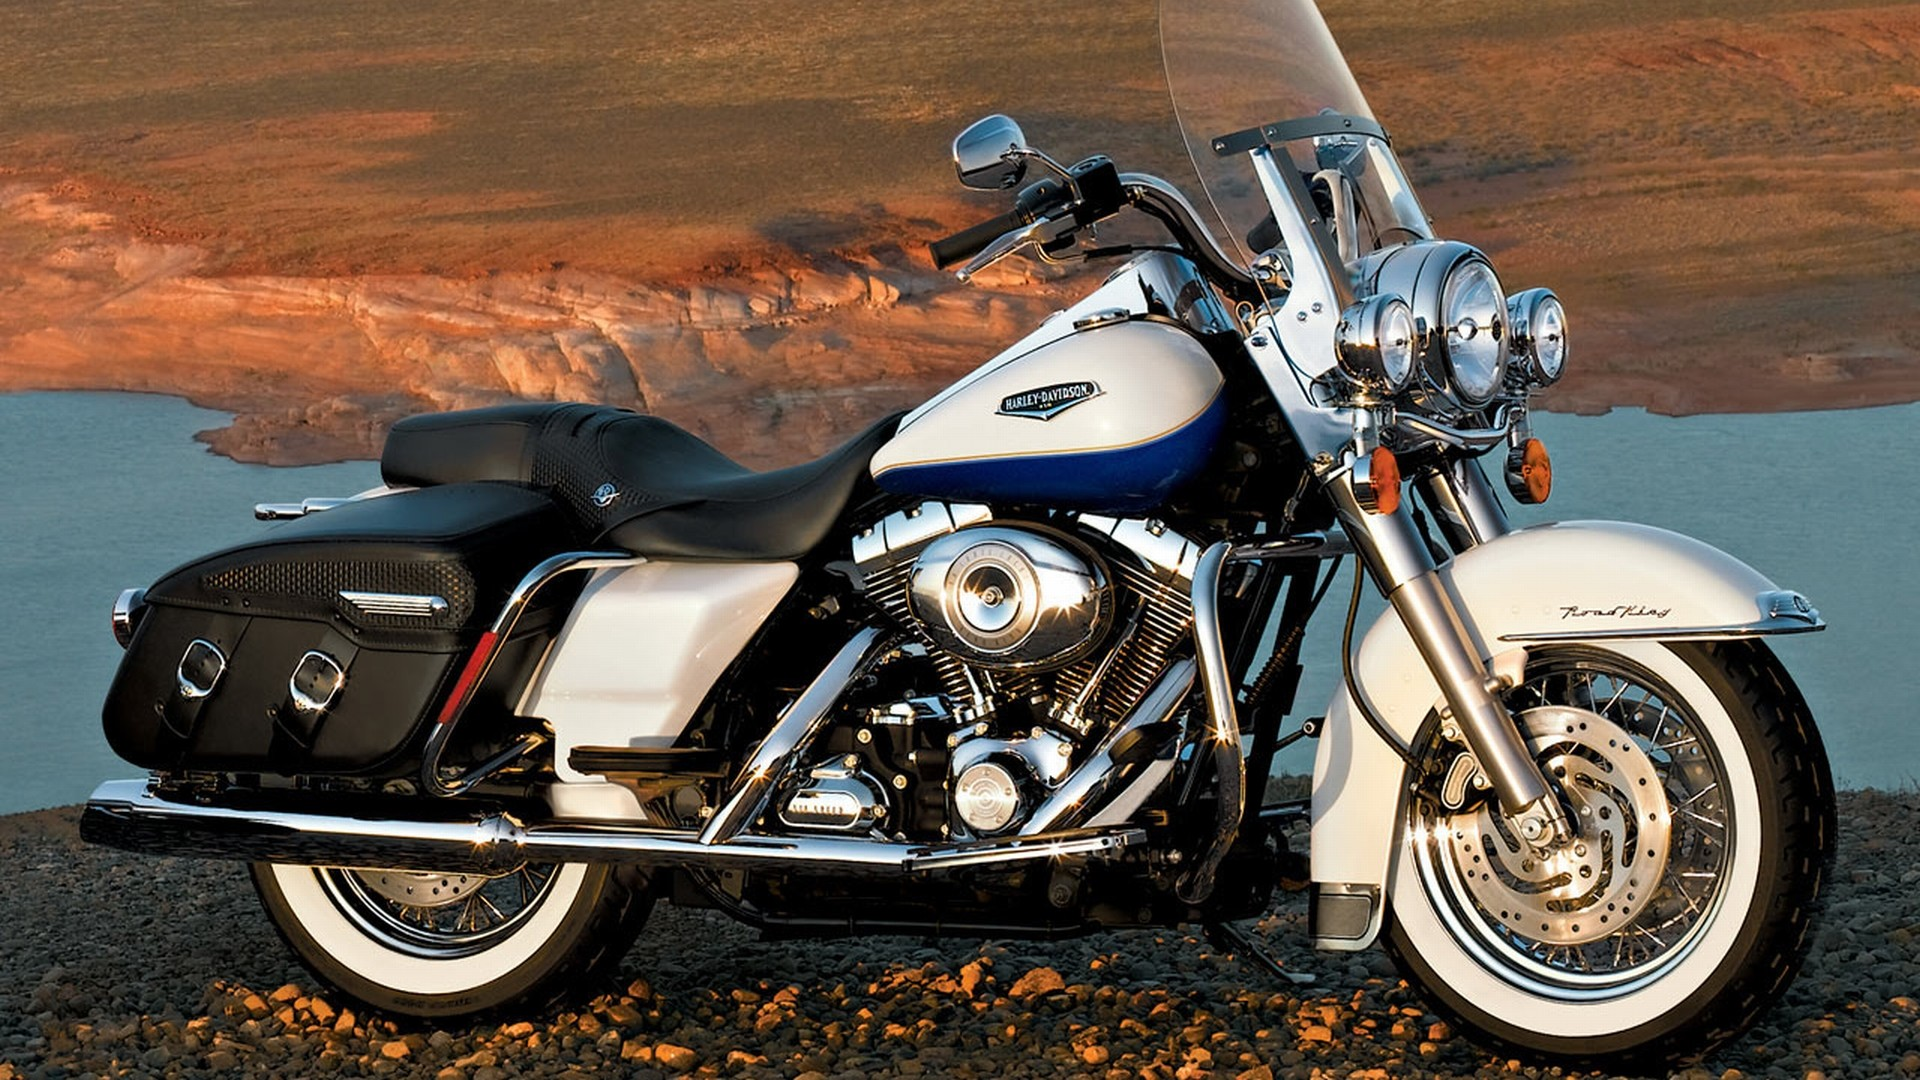 1920x1080 Harley Davidson Road King Wallpaper - WallpaperSafari ...